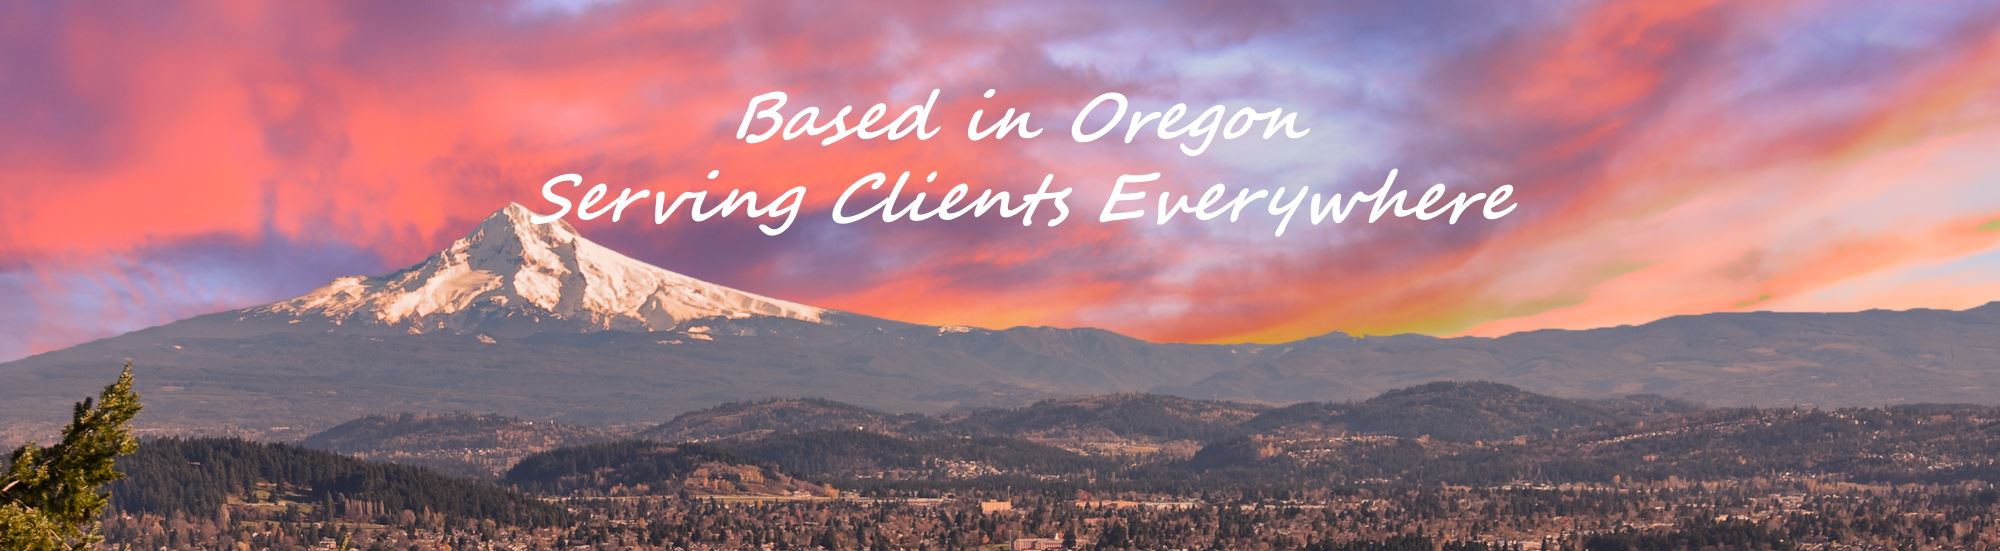 Portland web design and development